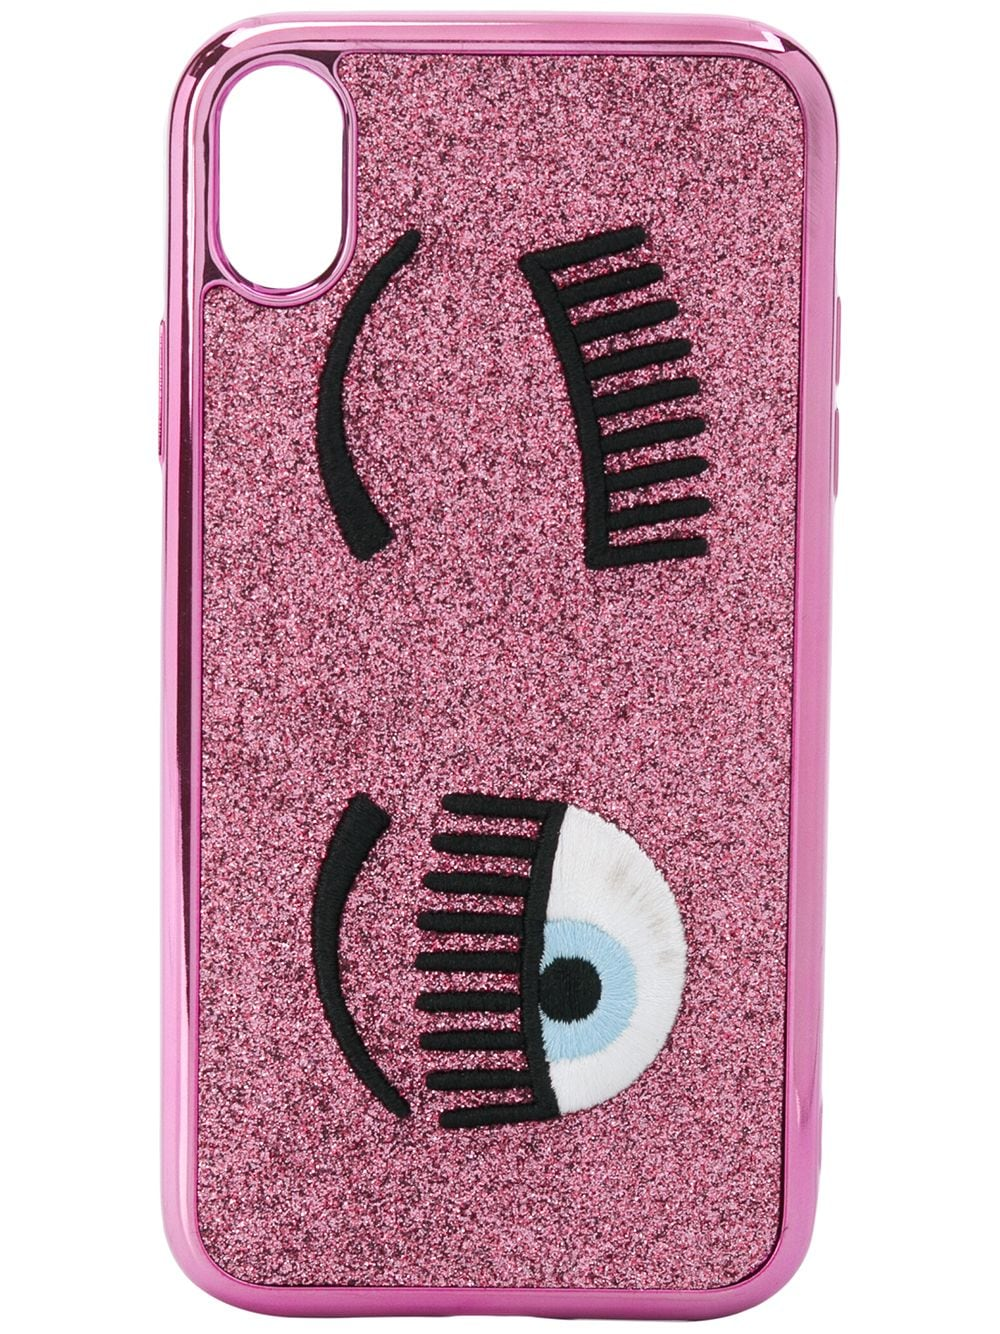 Picture of Chiara Ferragni | Flirting Embroidered Iphone Xr Case